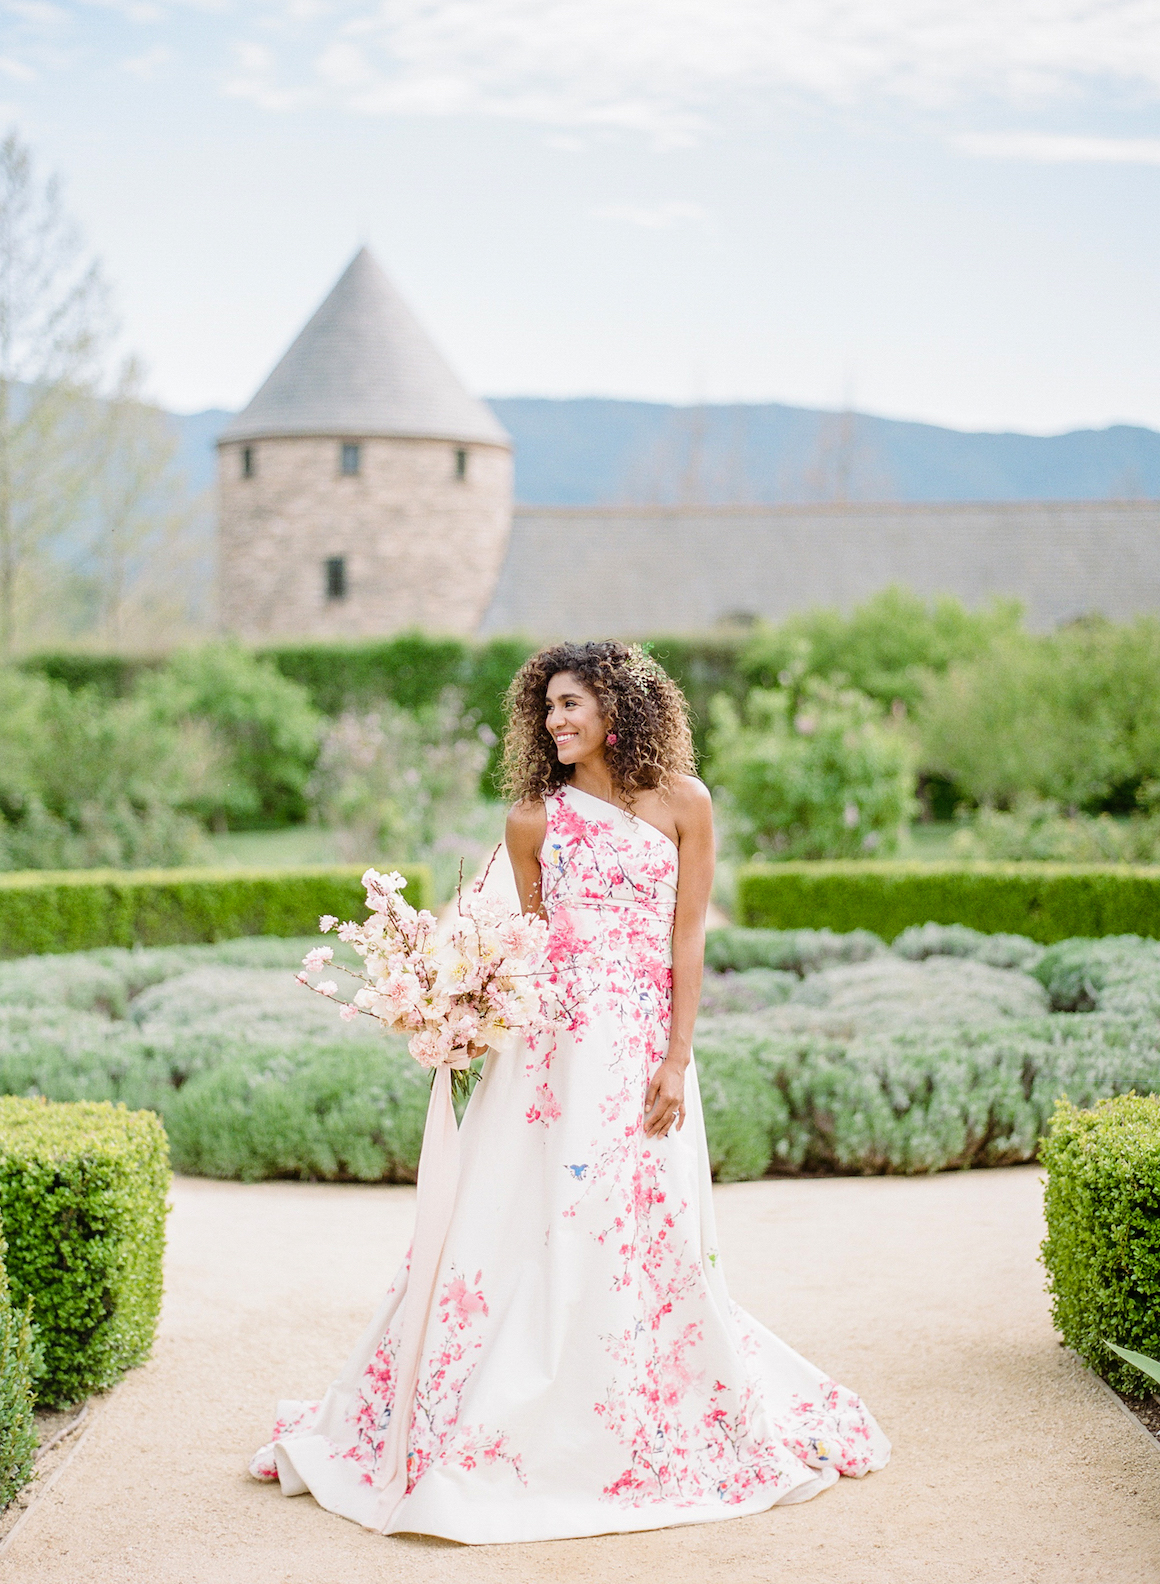 Cherry Blossom Wedding, French Countryside Wedding, Hylah White Special Events, Rebecca Yale Photo, Kestrel Park